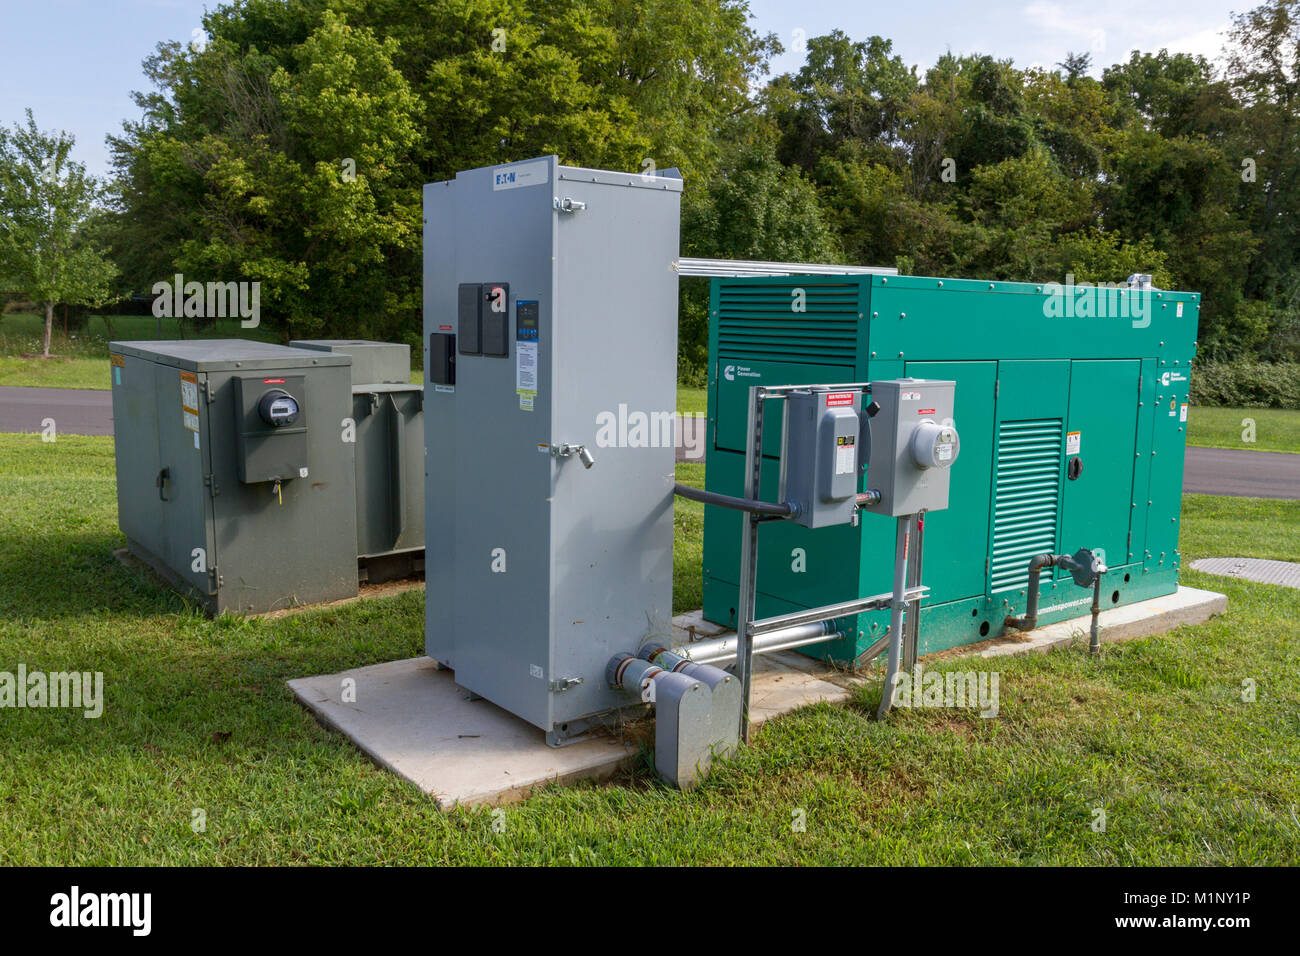 Standby Generator Stock Photos & Standby Generator Stock Images - Alamy